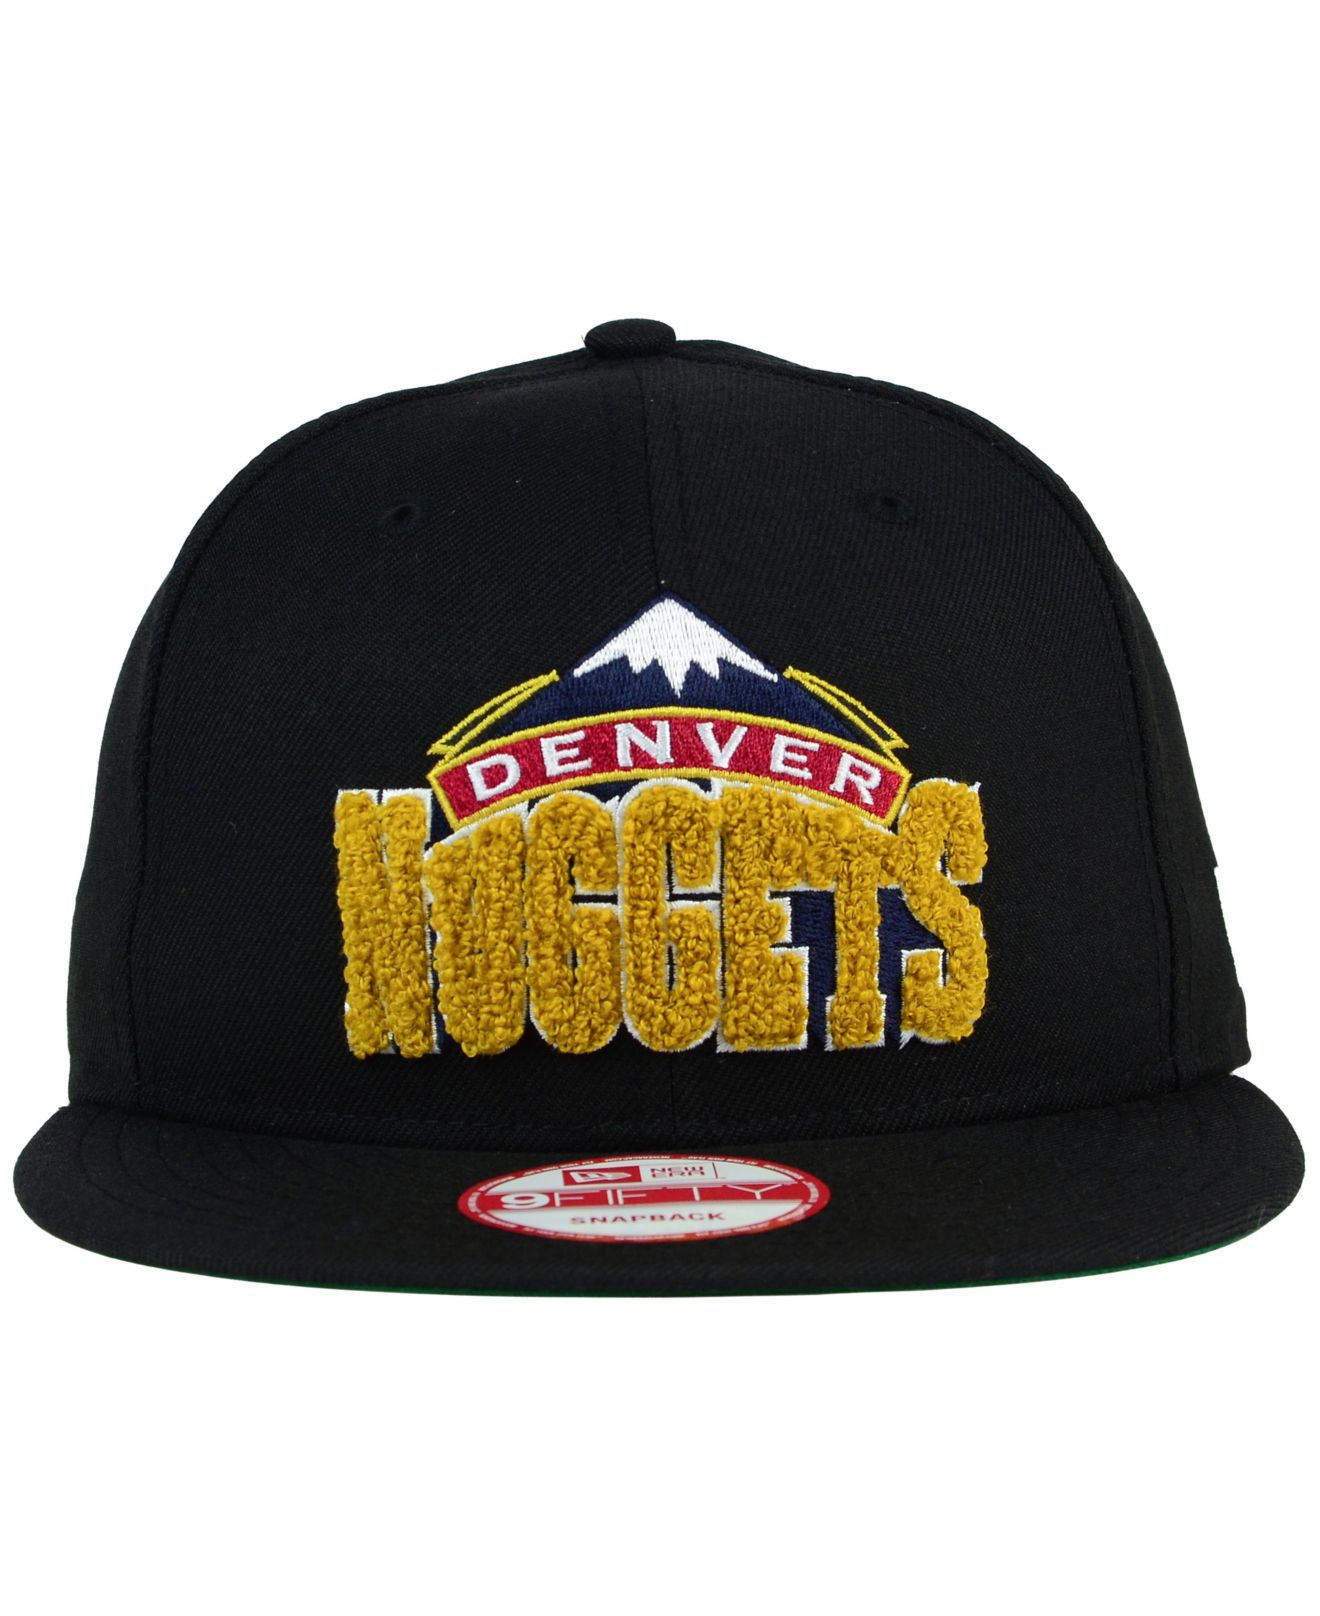 cheap for discount 4ead6 5203e ... hot ktz denver nuggets letter man 9fifty snapback cap in black for men  04174 58ab4